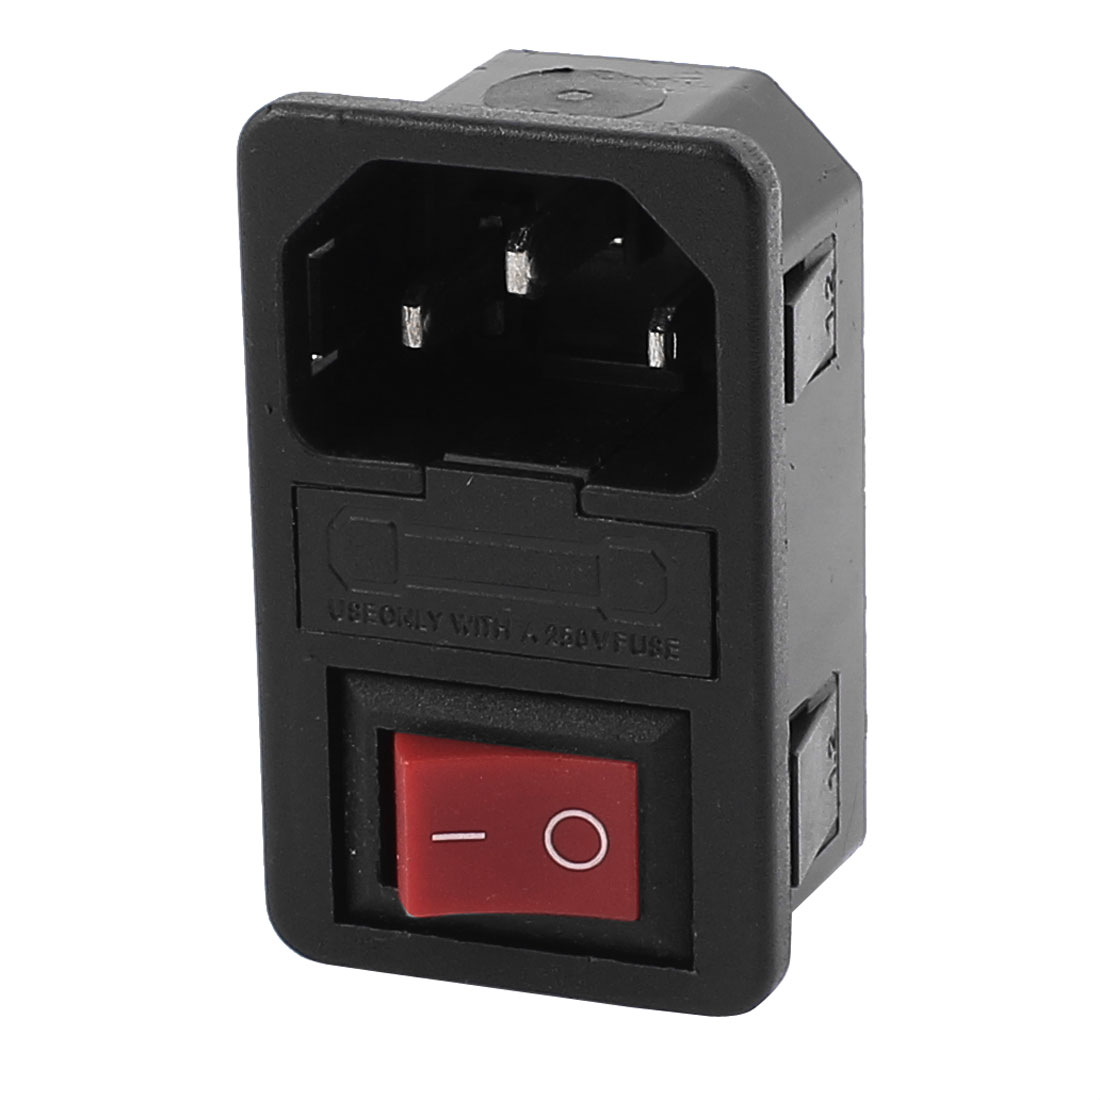 AC 250V 10A 2 Terminals Red Rocker Switch Inlet Power Socket w Fuse Holder